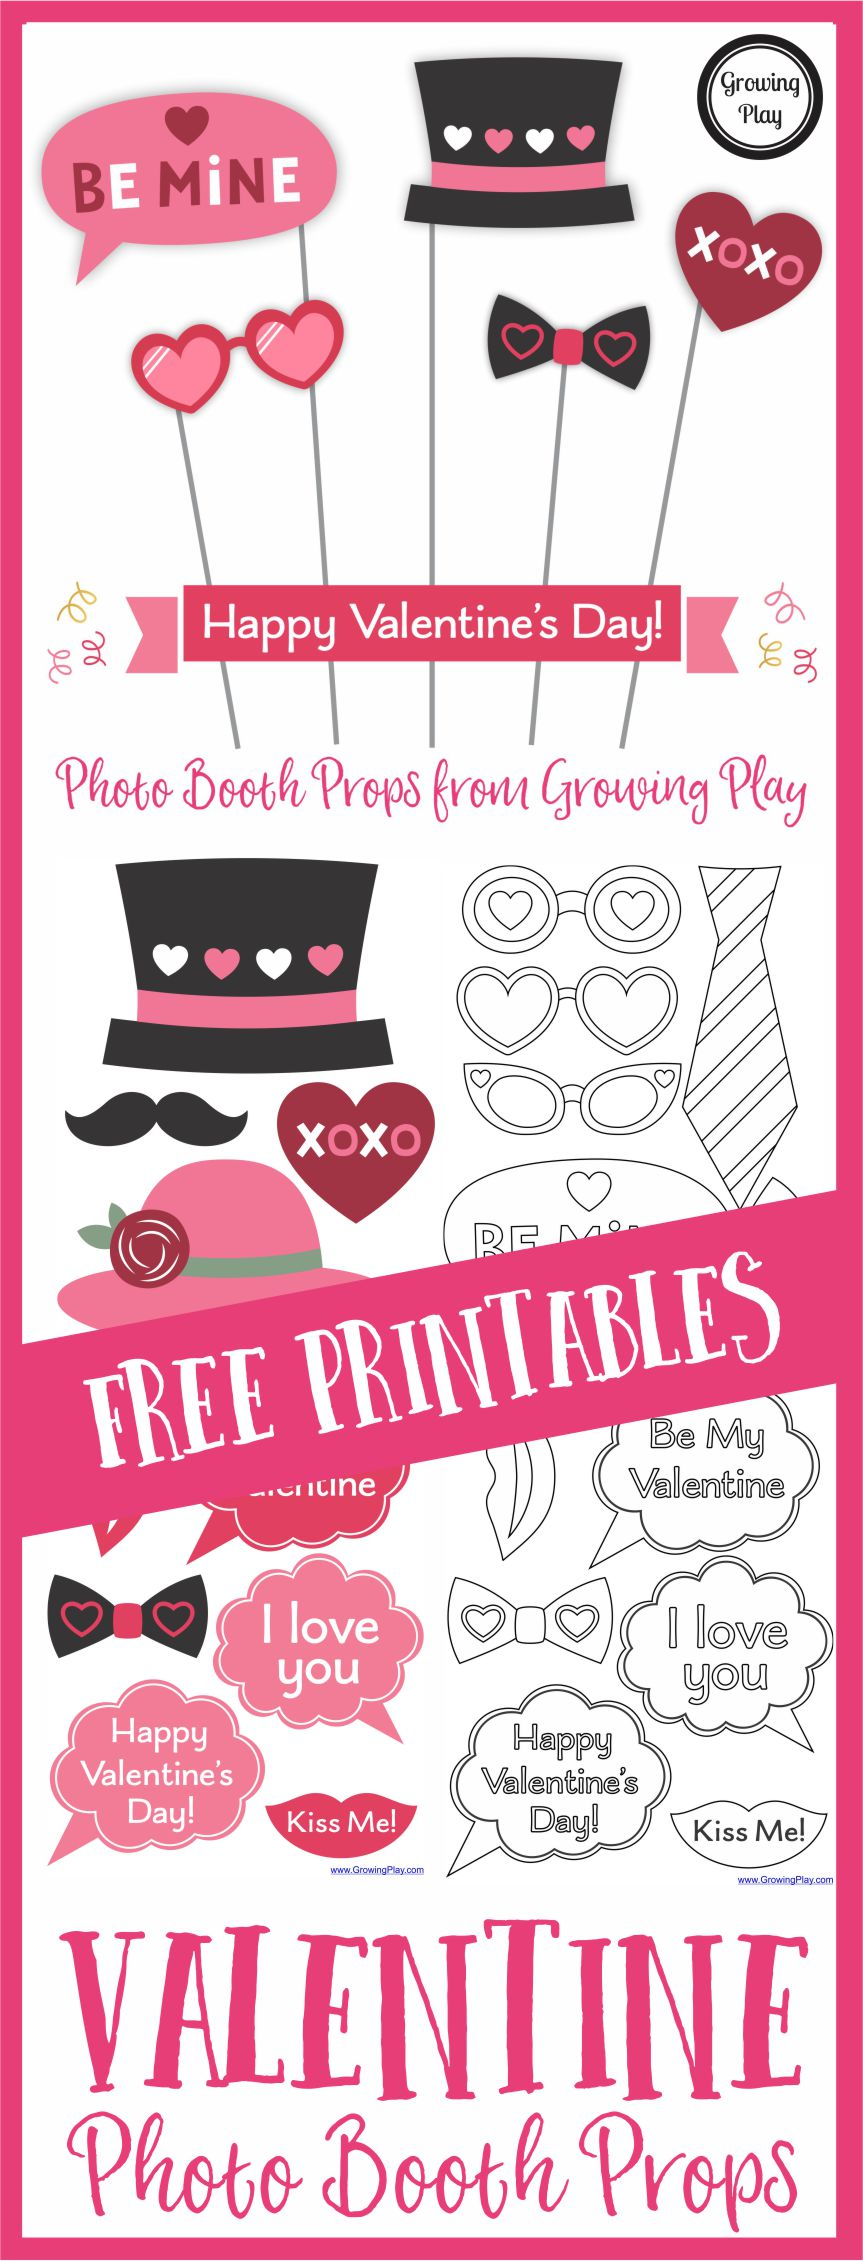 Sign Up To Receive Our Newsletter To Download Your FREE Valentineu0027s Day  Photo Booth Prop.